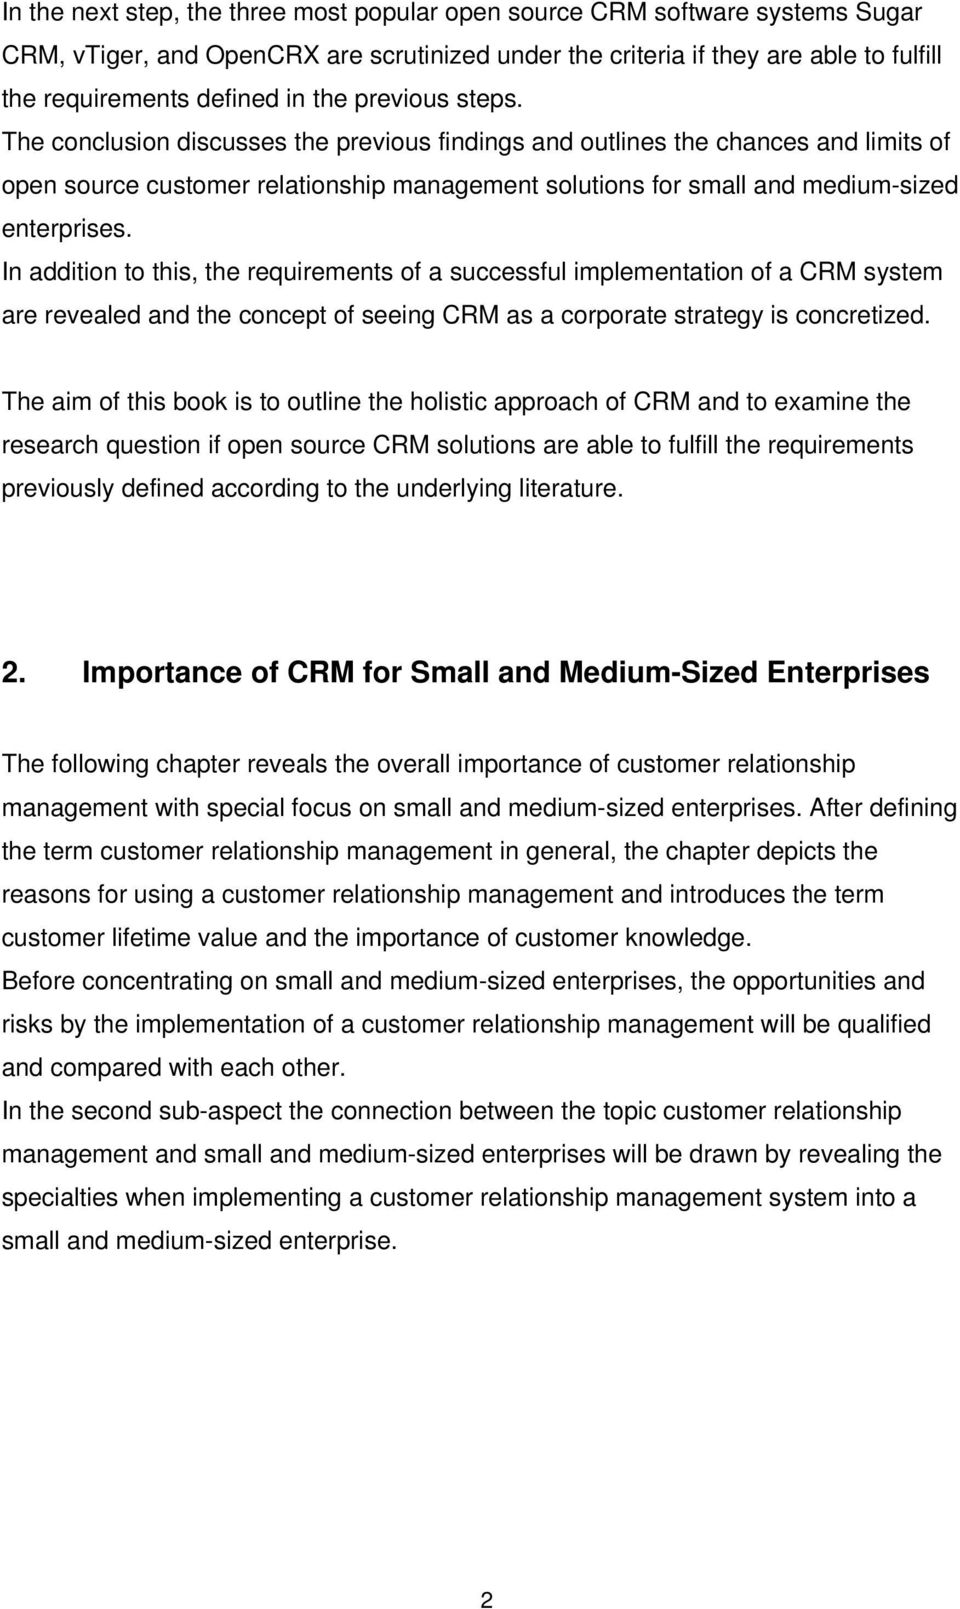 In addition to this, the requirements of a successful implementation of a CRM system are revealed and the concept of seeing CRM as a corporate strategy is concretized.